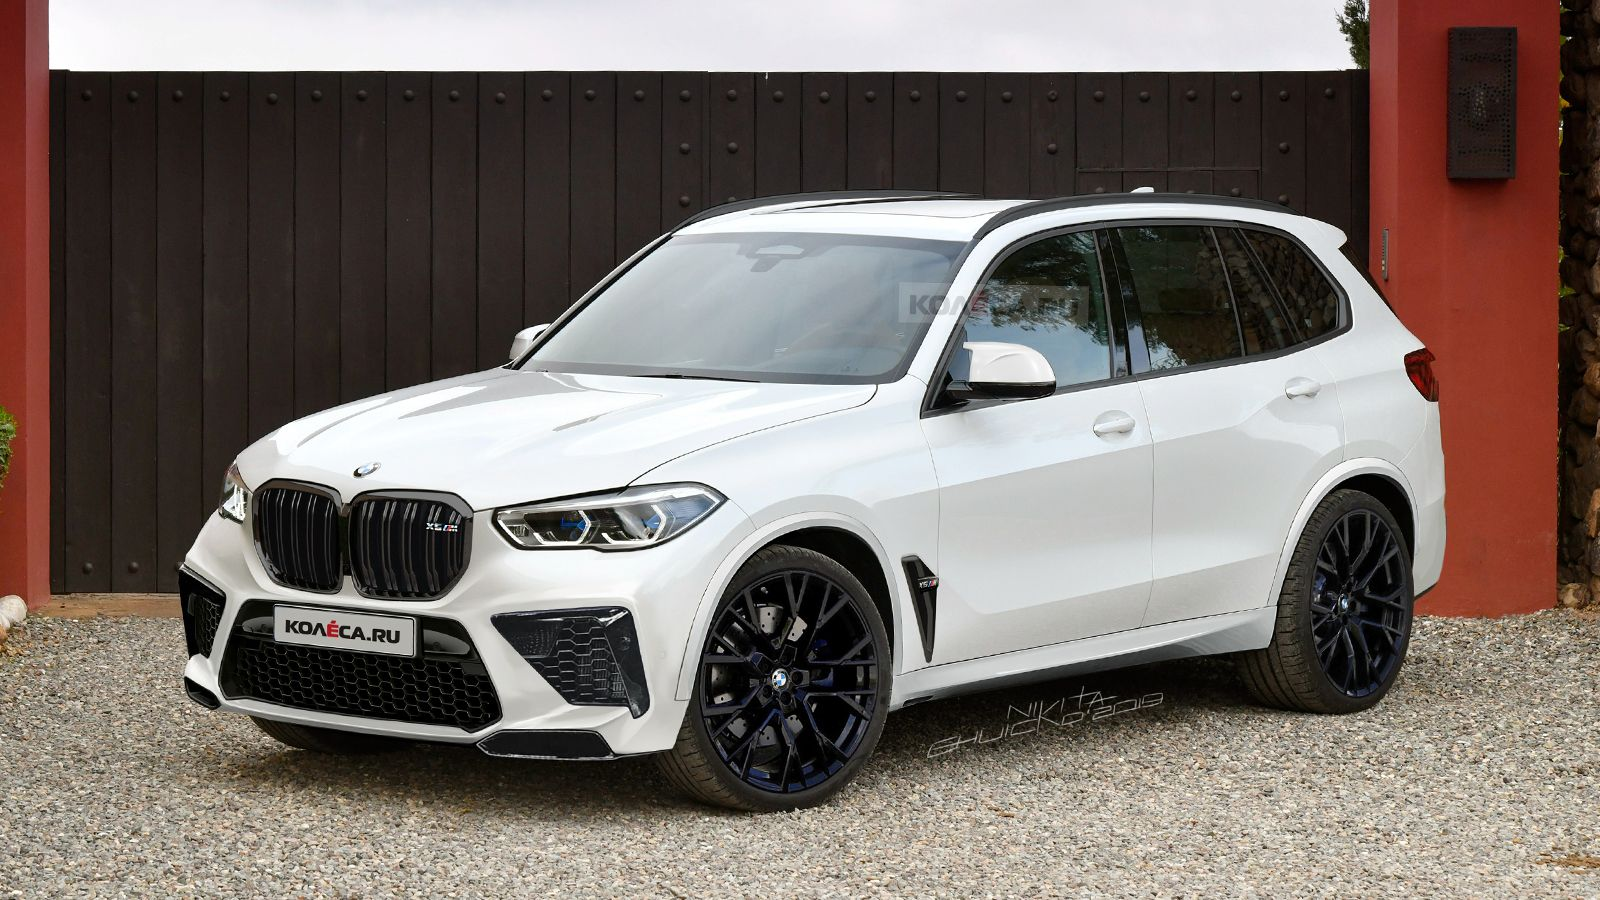 Bmw F95 X5 M Gets Teased Through New Renderings Bmw Suv Bmw X5 M Bmw X5 M Sport